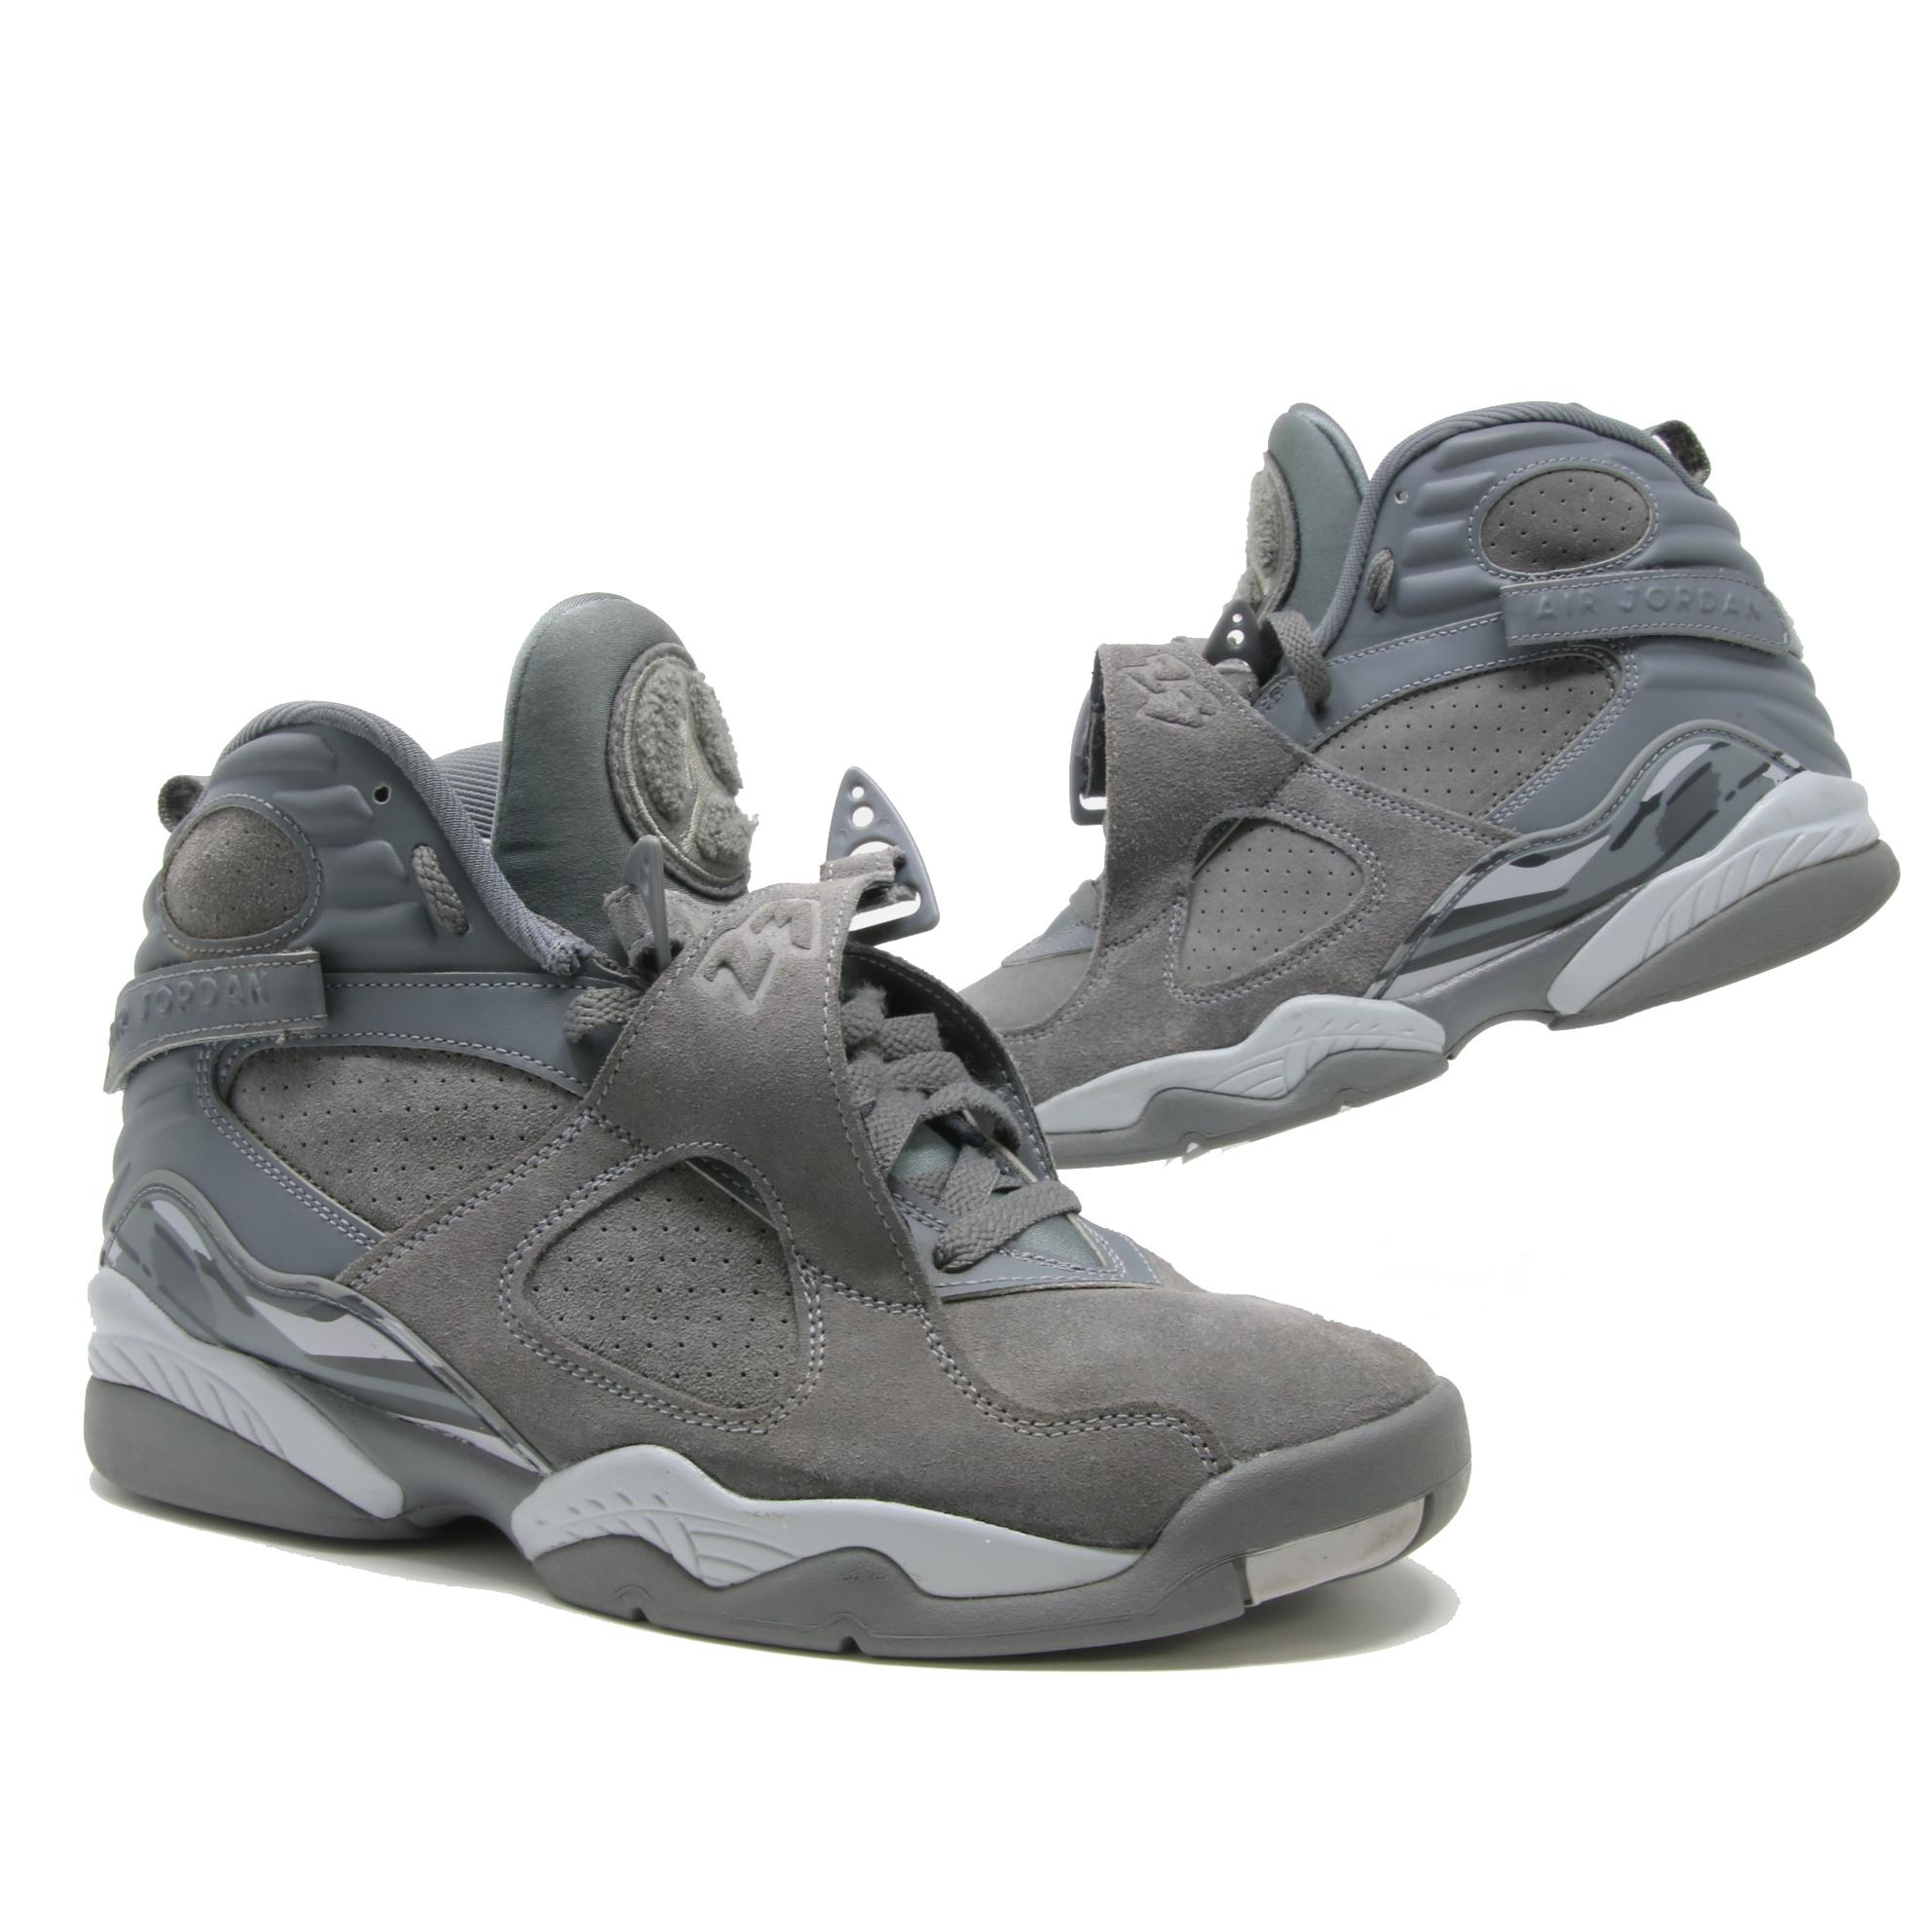 online store fe1cd 04f52 ... release date air jordan nike adidas puma sneakers tennis cool grey  athletic 8aed0 36a2b ...